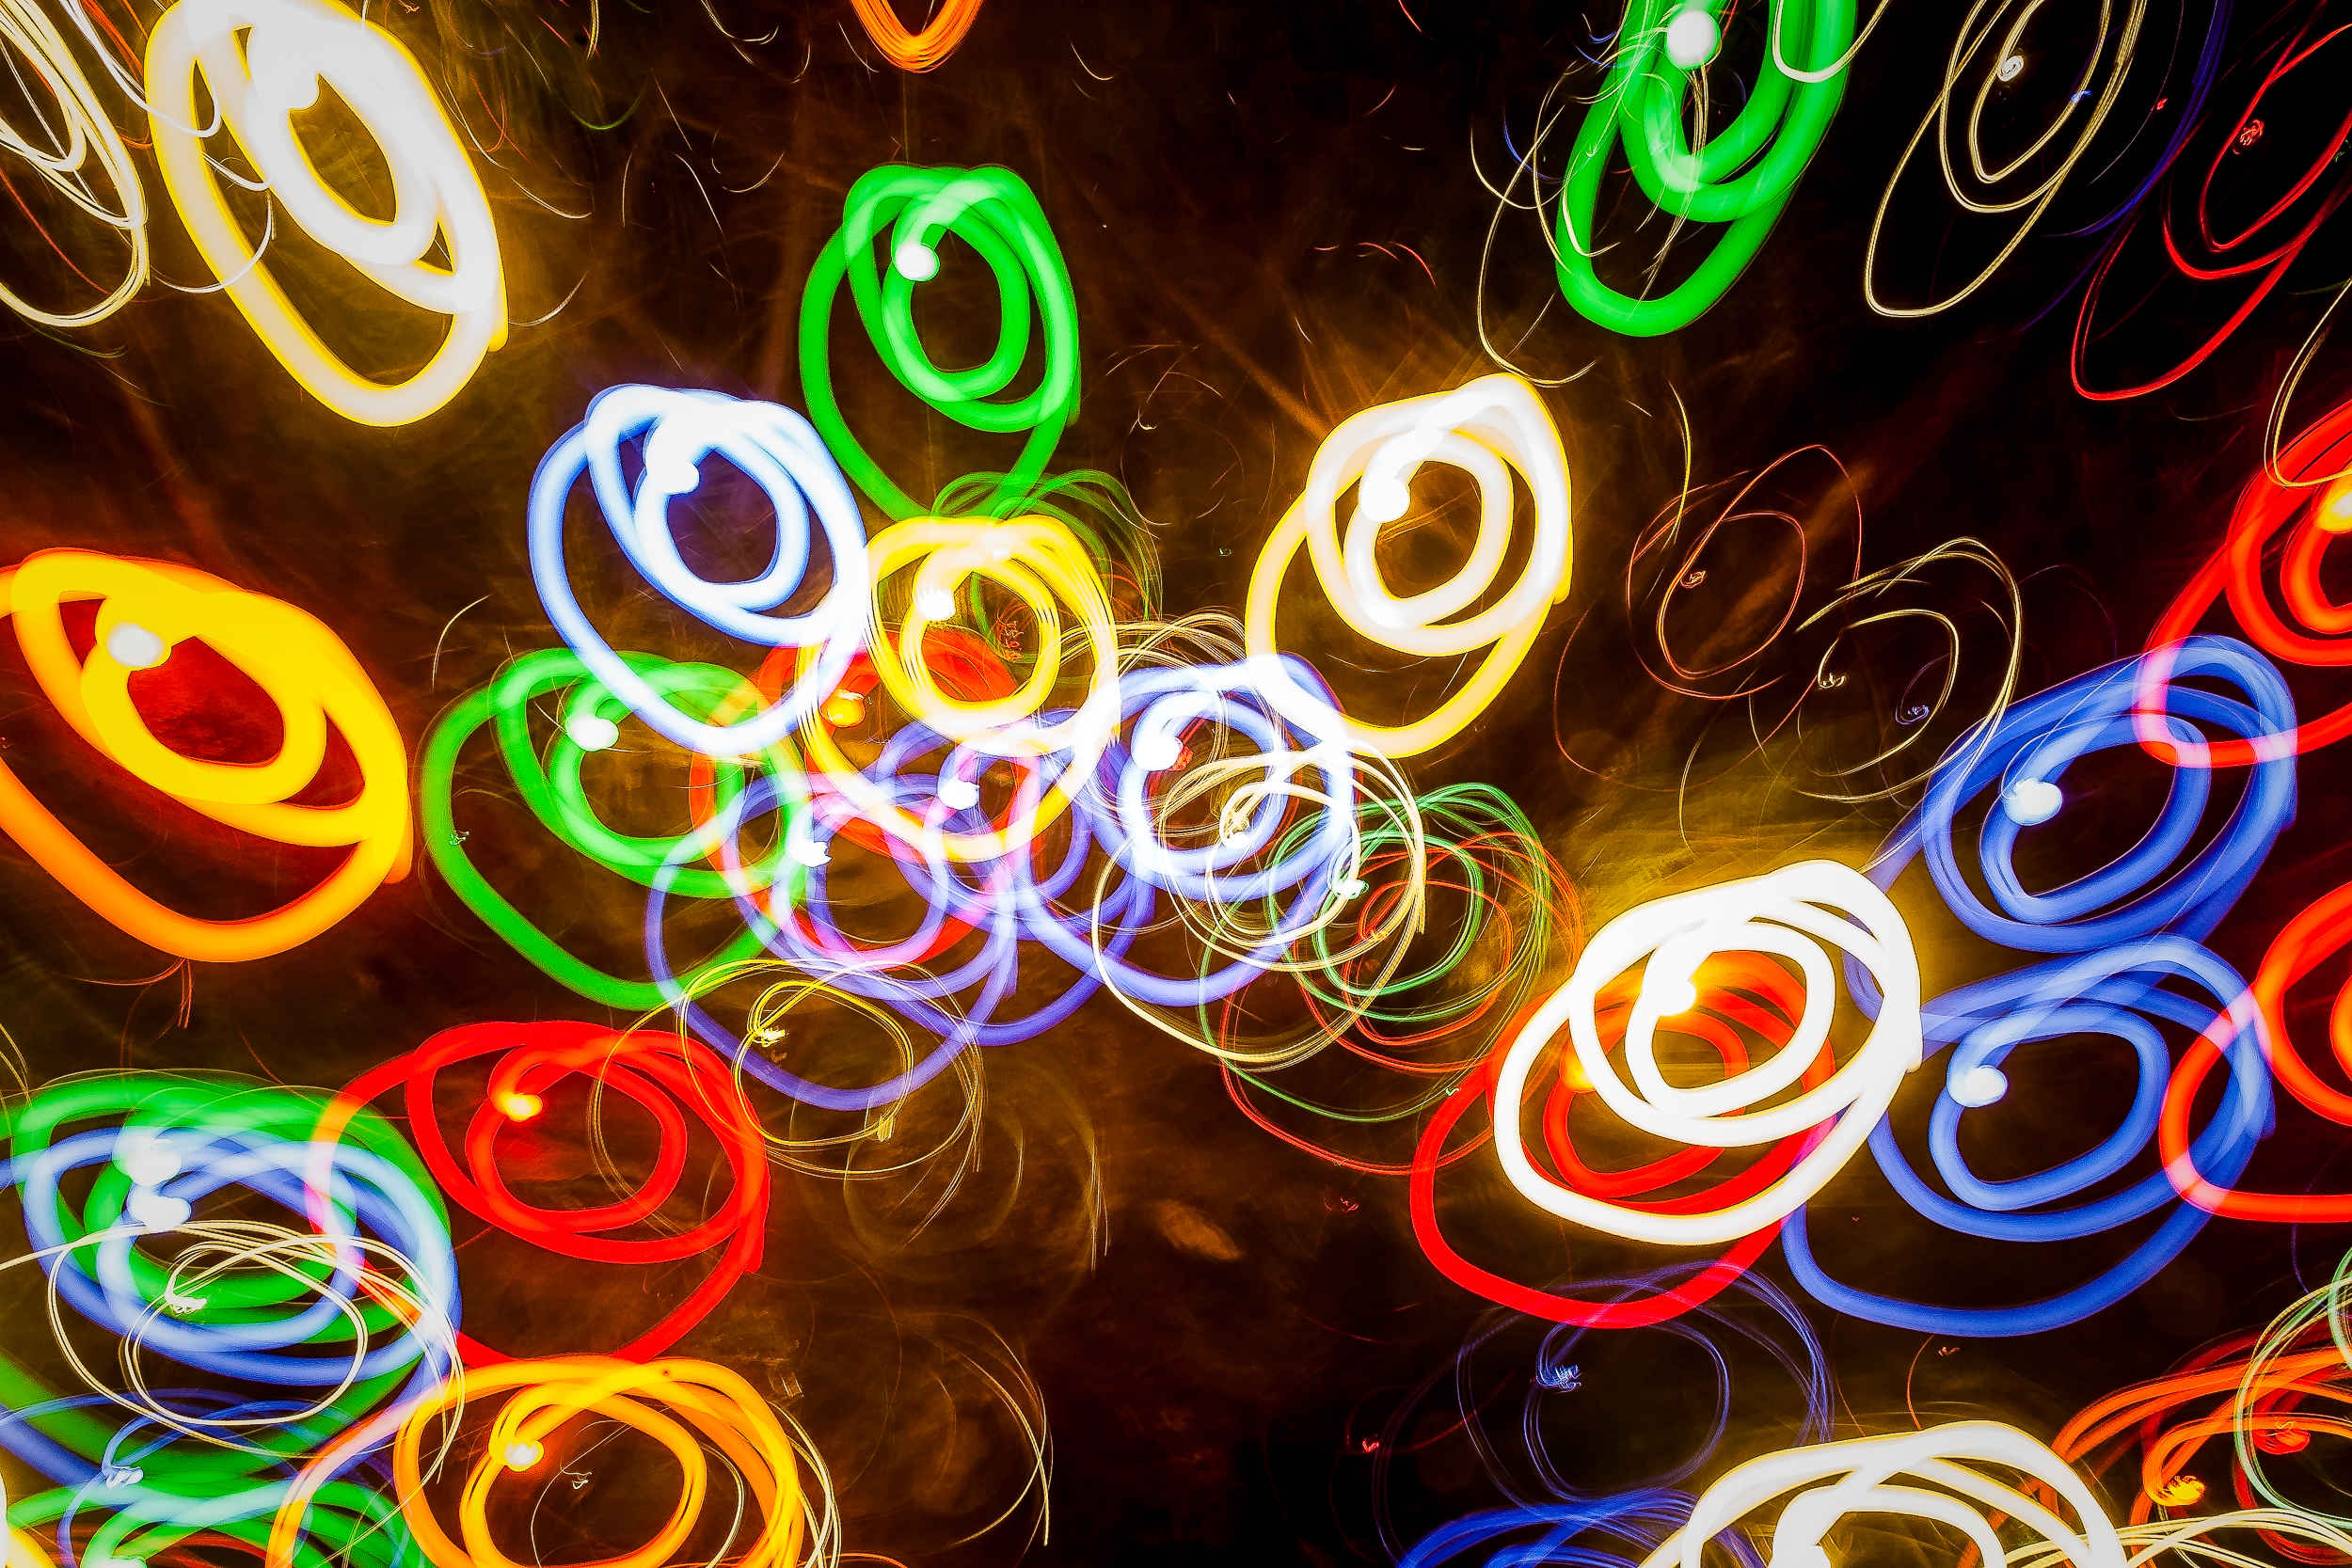 An abstract image of    circles of light    made by moving the camera, in a circular pattern, through a    10 second exposure   .